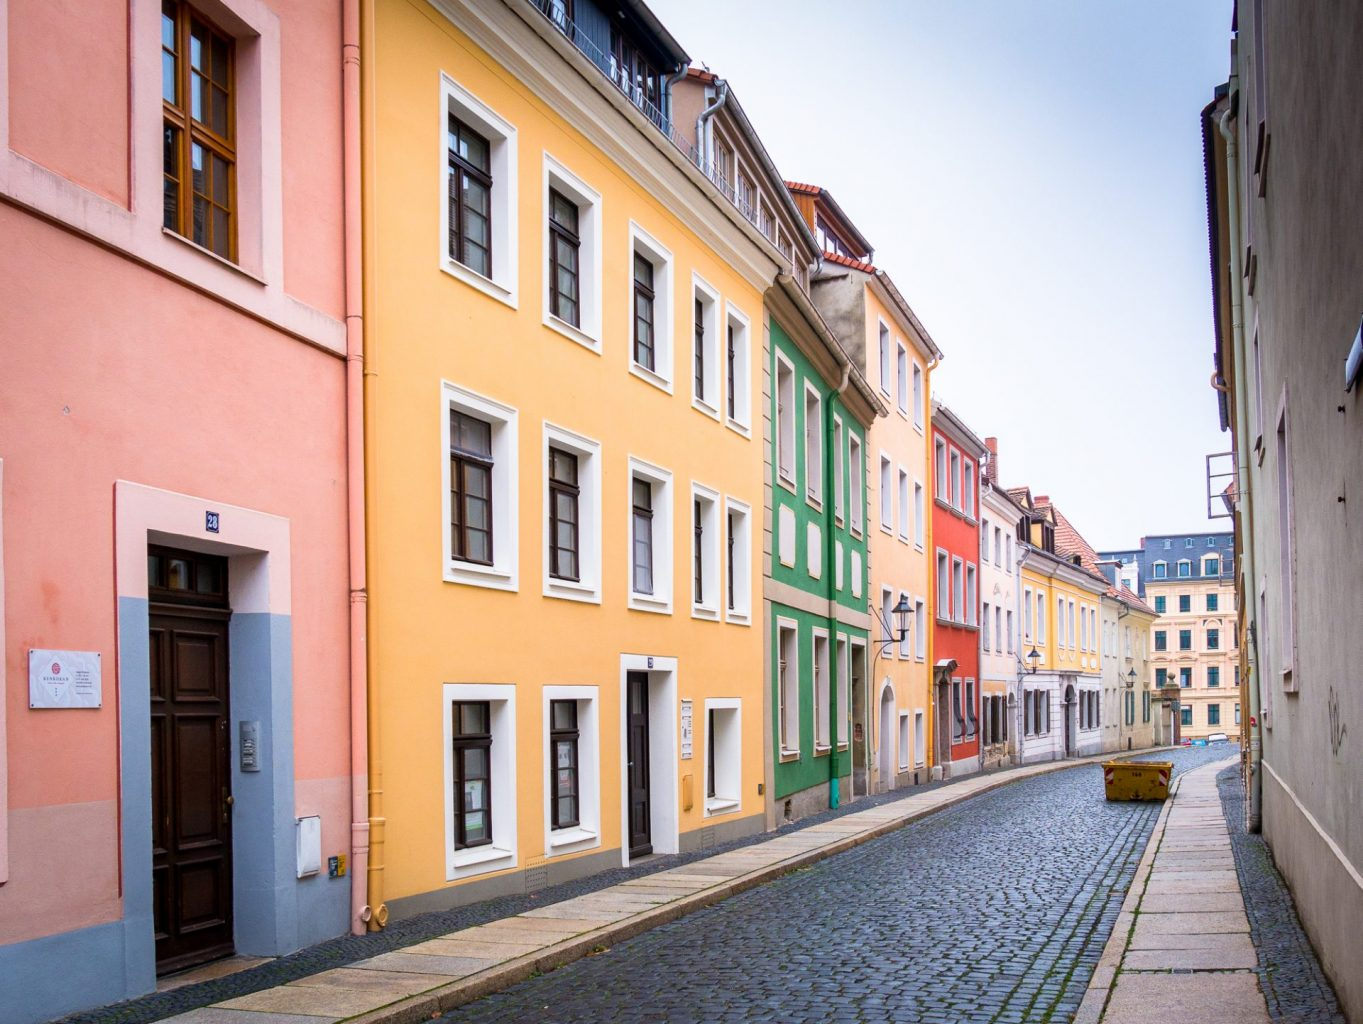 Side streets of Goerlitz